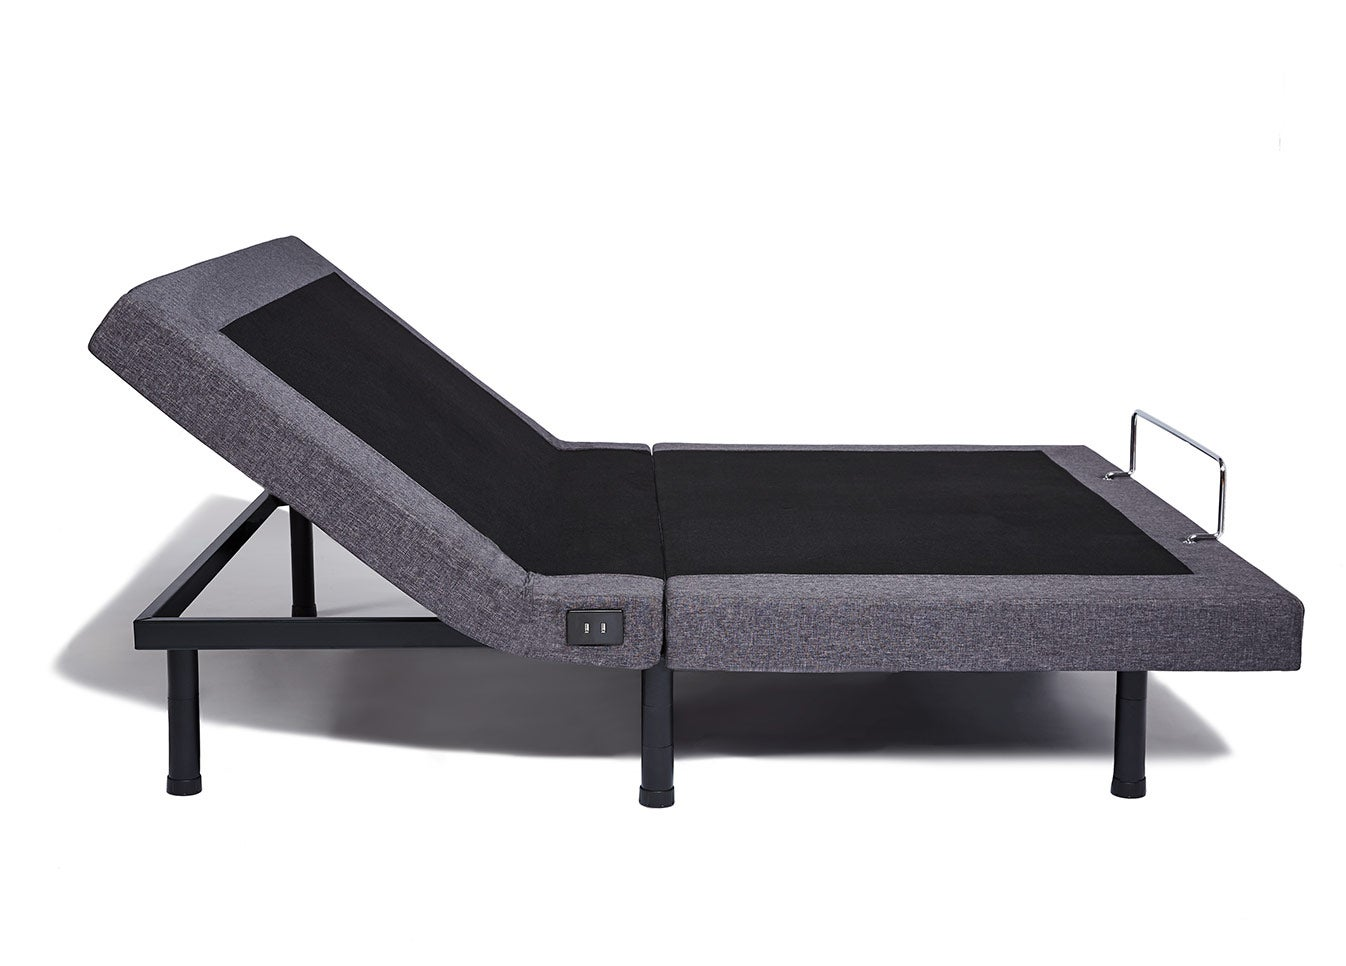 NectarSleep adjustable bed frame - head up position